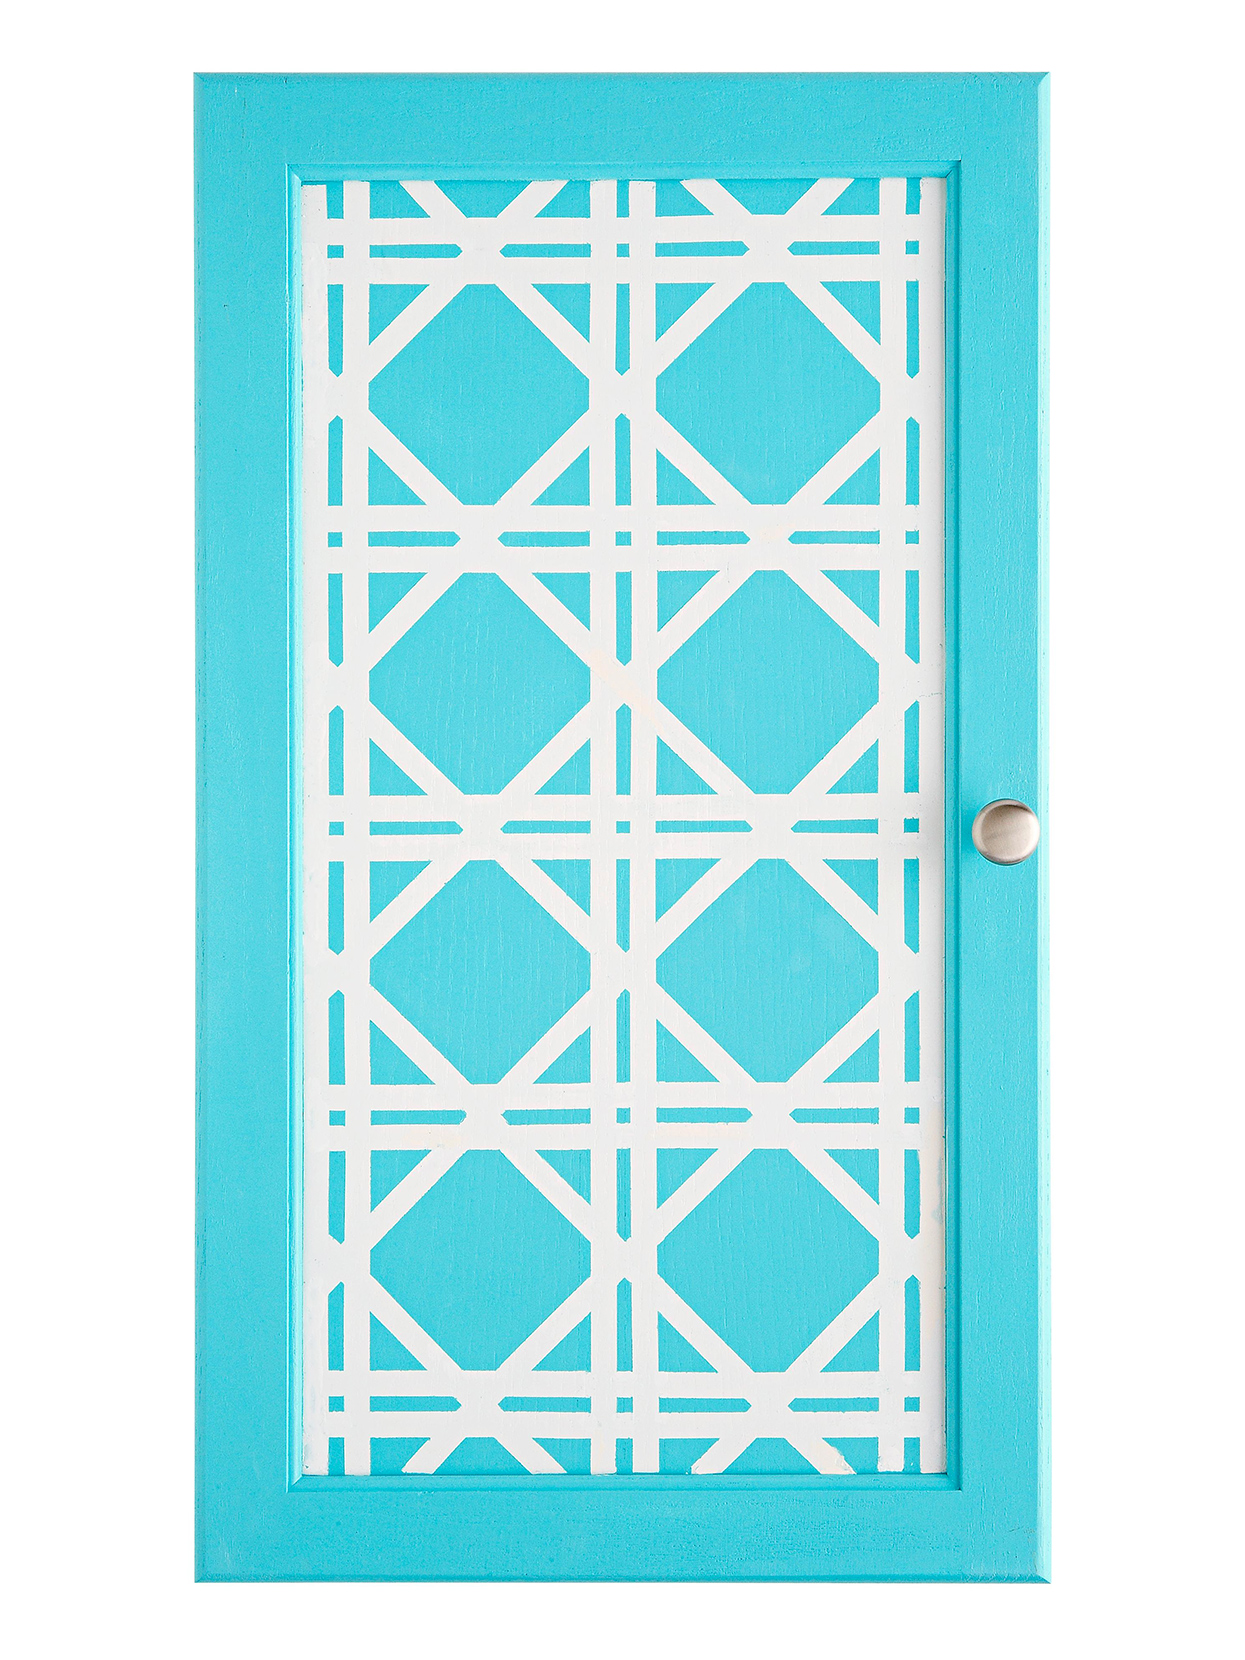 DIY Lattice Design